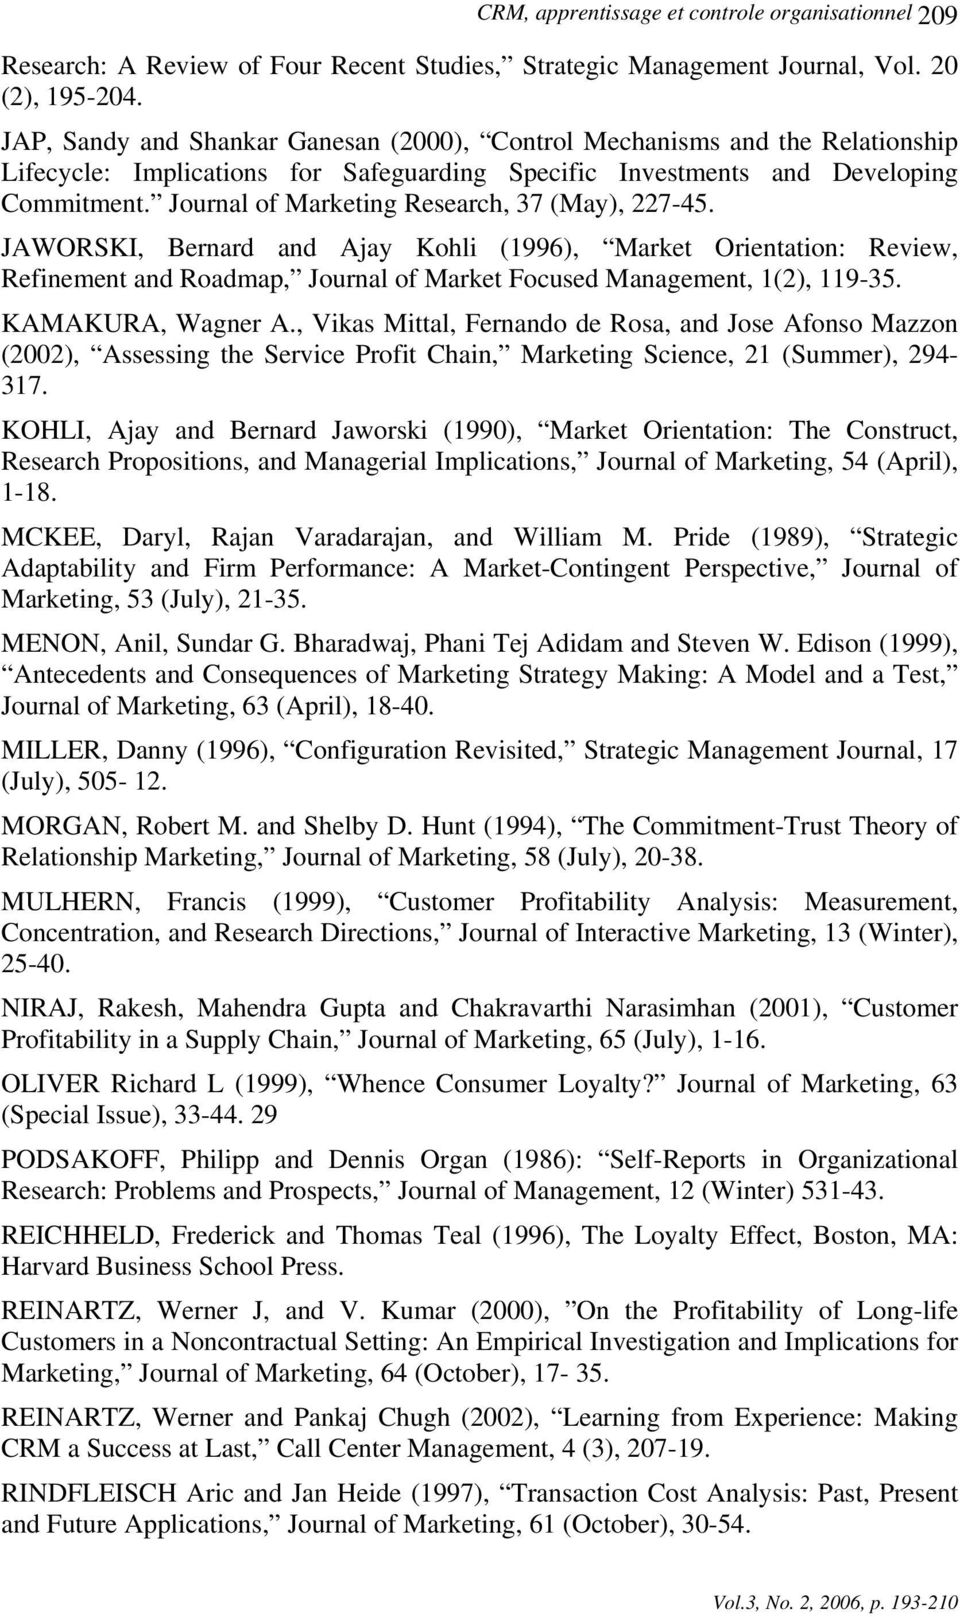 Journal of Marketing Research, 37 (May), 227-45. JAWORSKI, Bernard and Ajay Kohli (1996), Market Orientation: Review, Refinement and Roadmap, Journal of Market Focused Management, 1(2), 119-35.